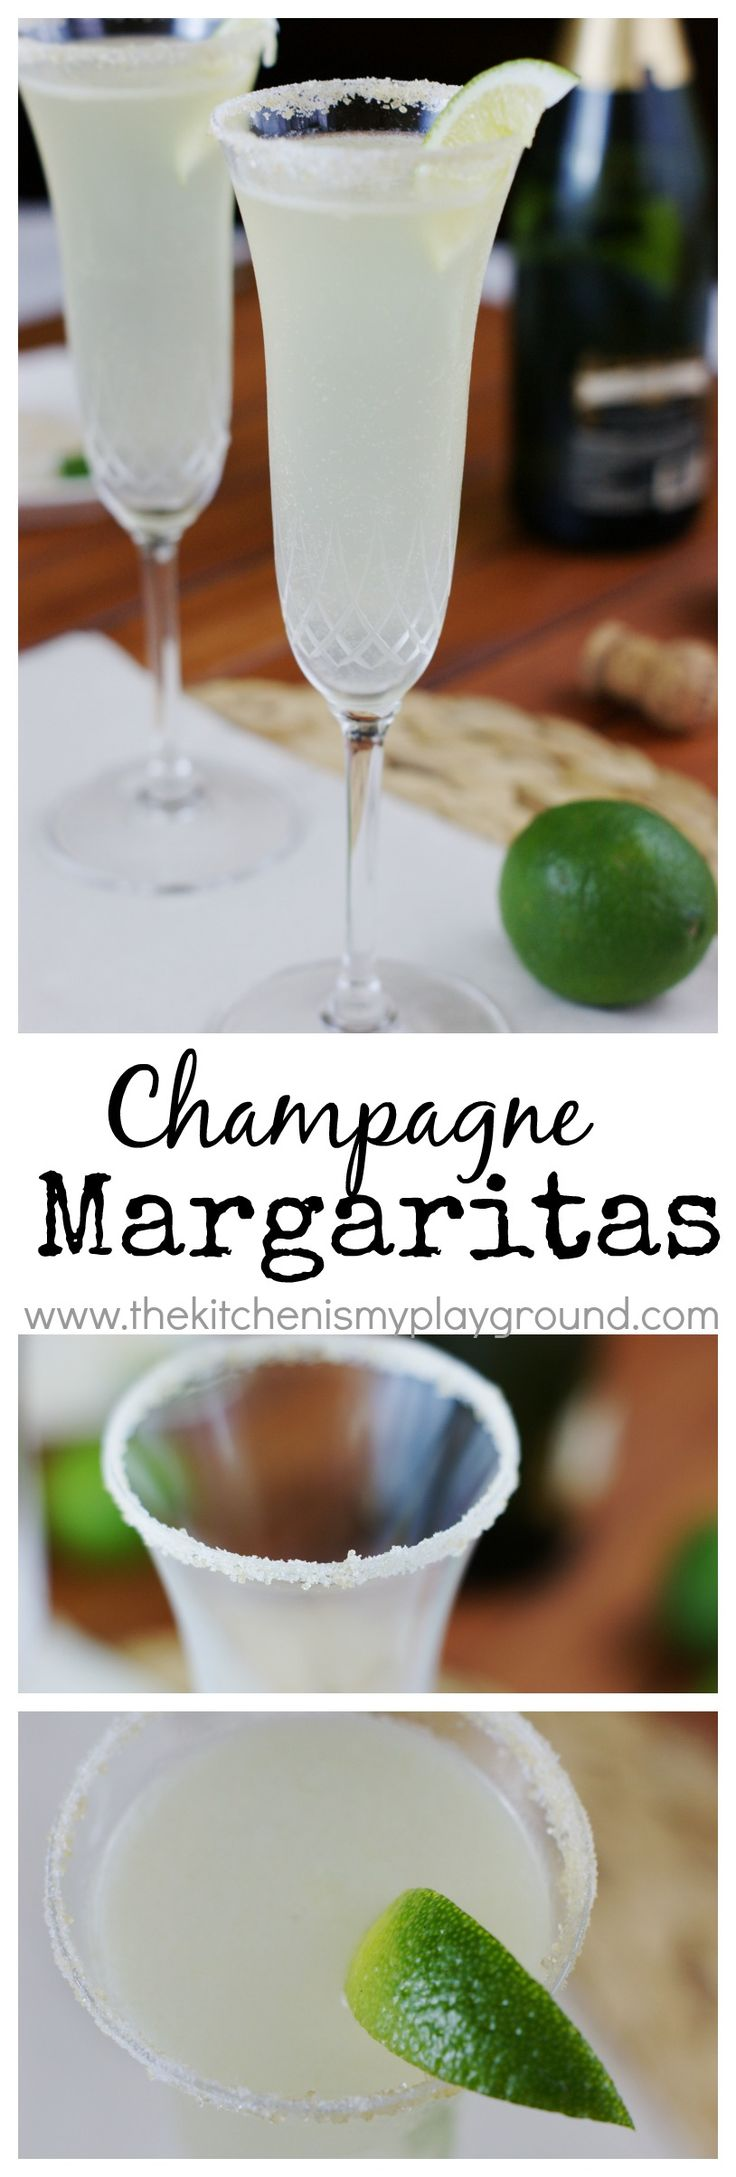 Champagne Margaritas ~ give your margaritas a delicious little champagne twist…